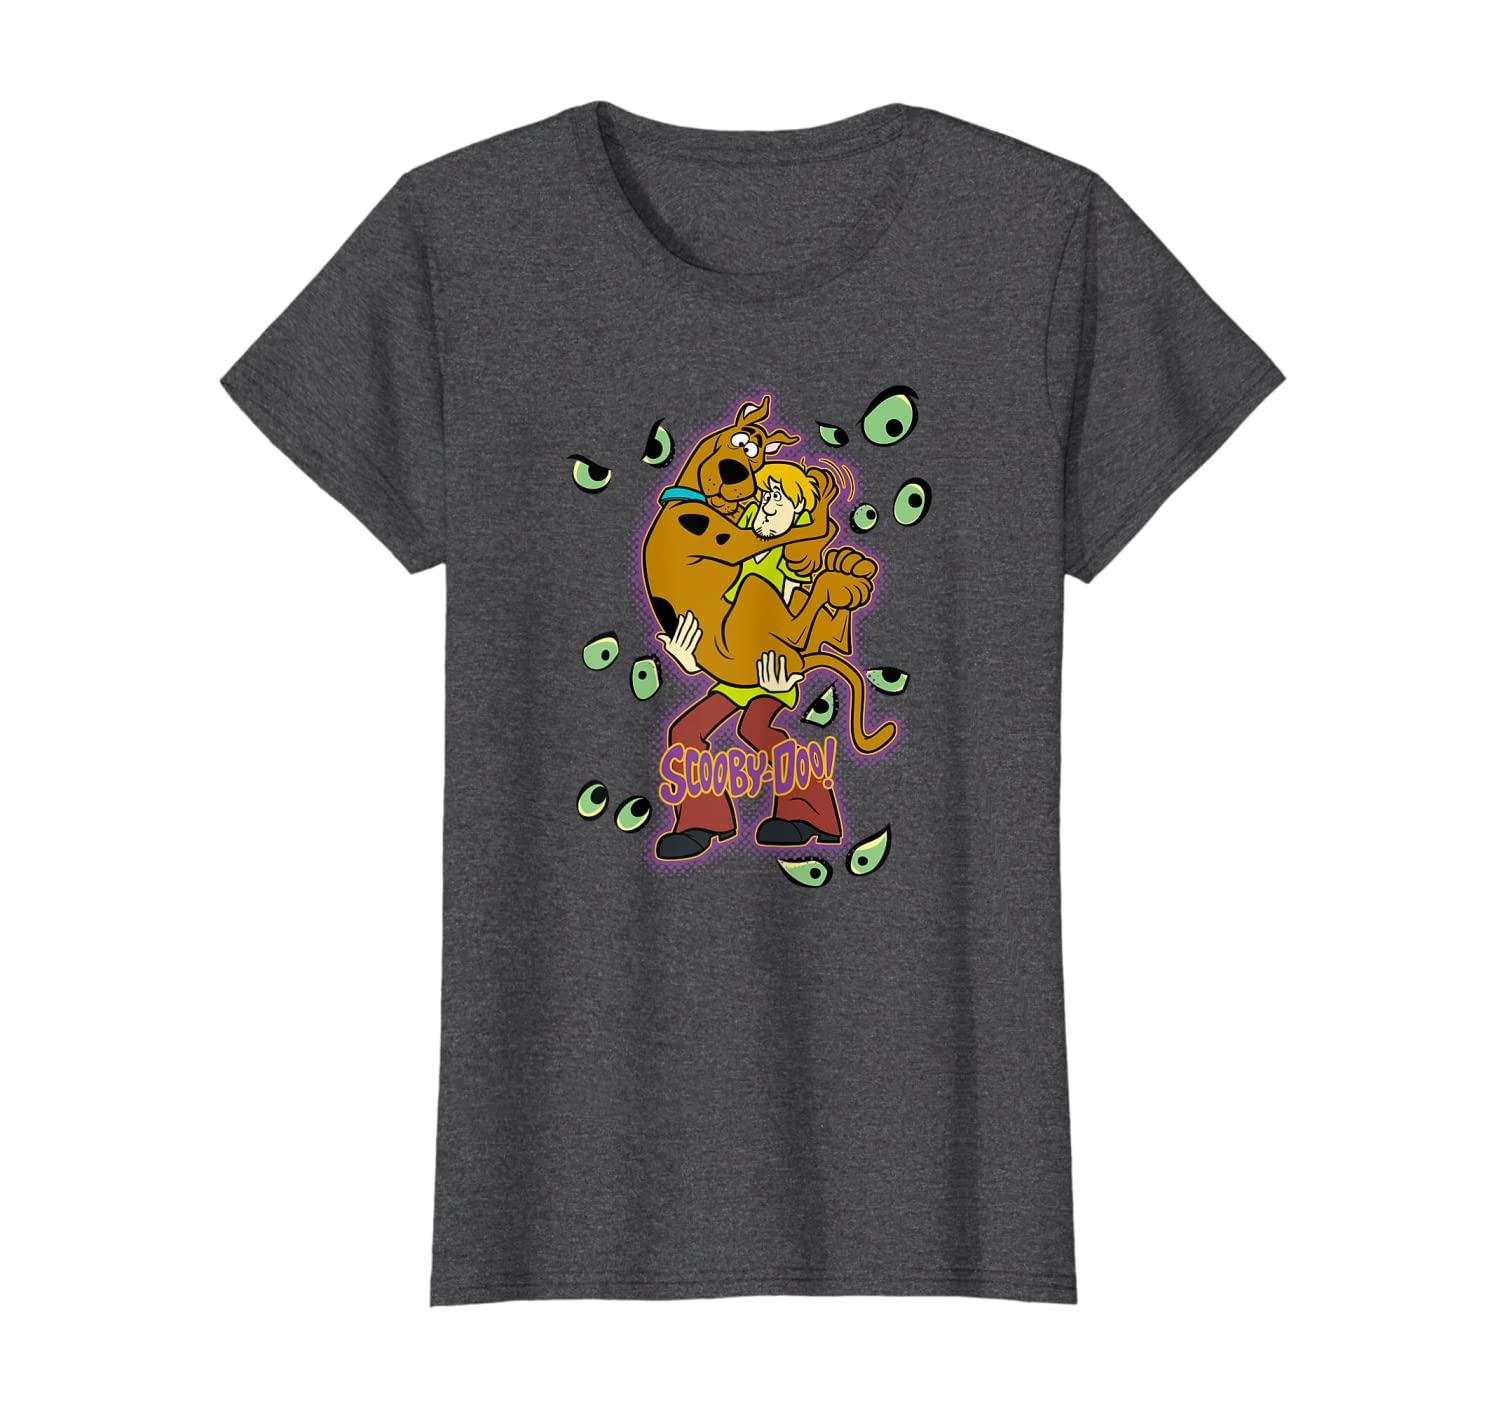 Scooby-Doo Shaggy Being Watched T-Shirt